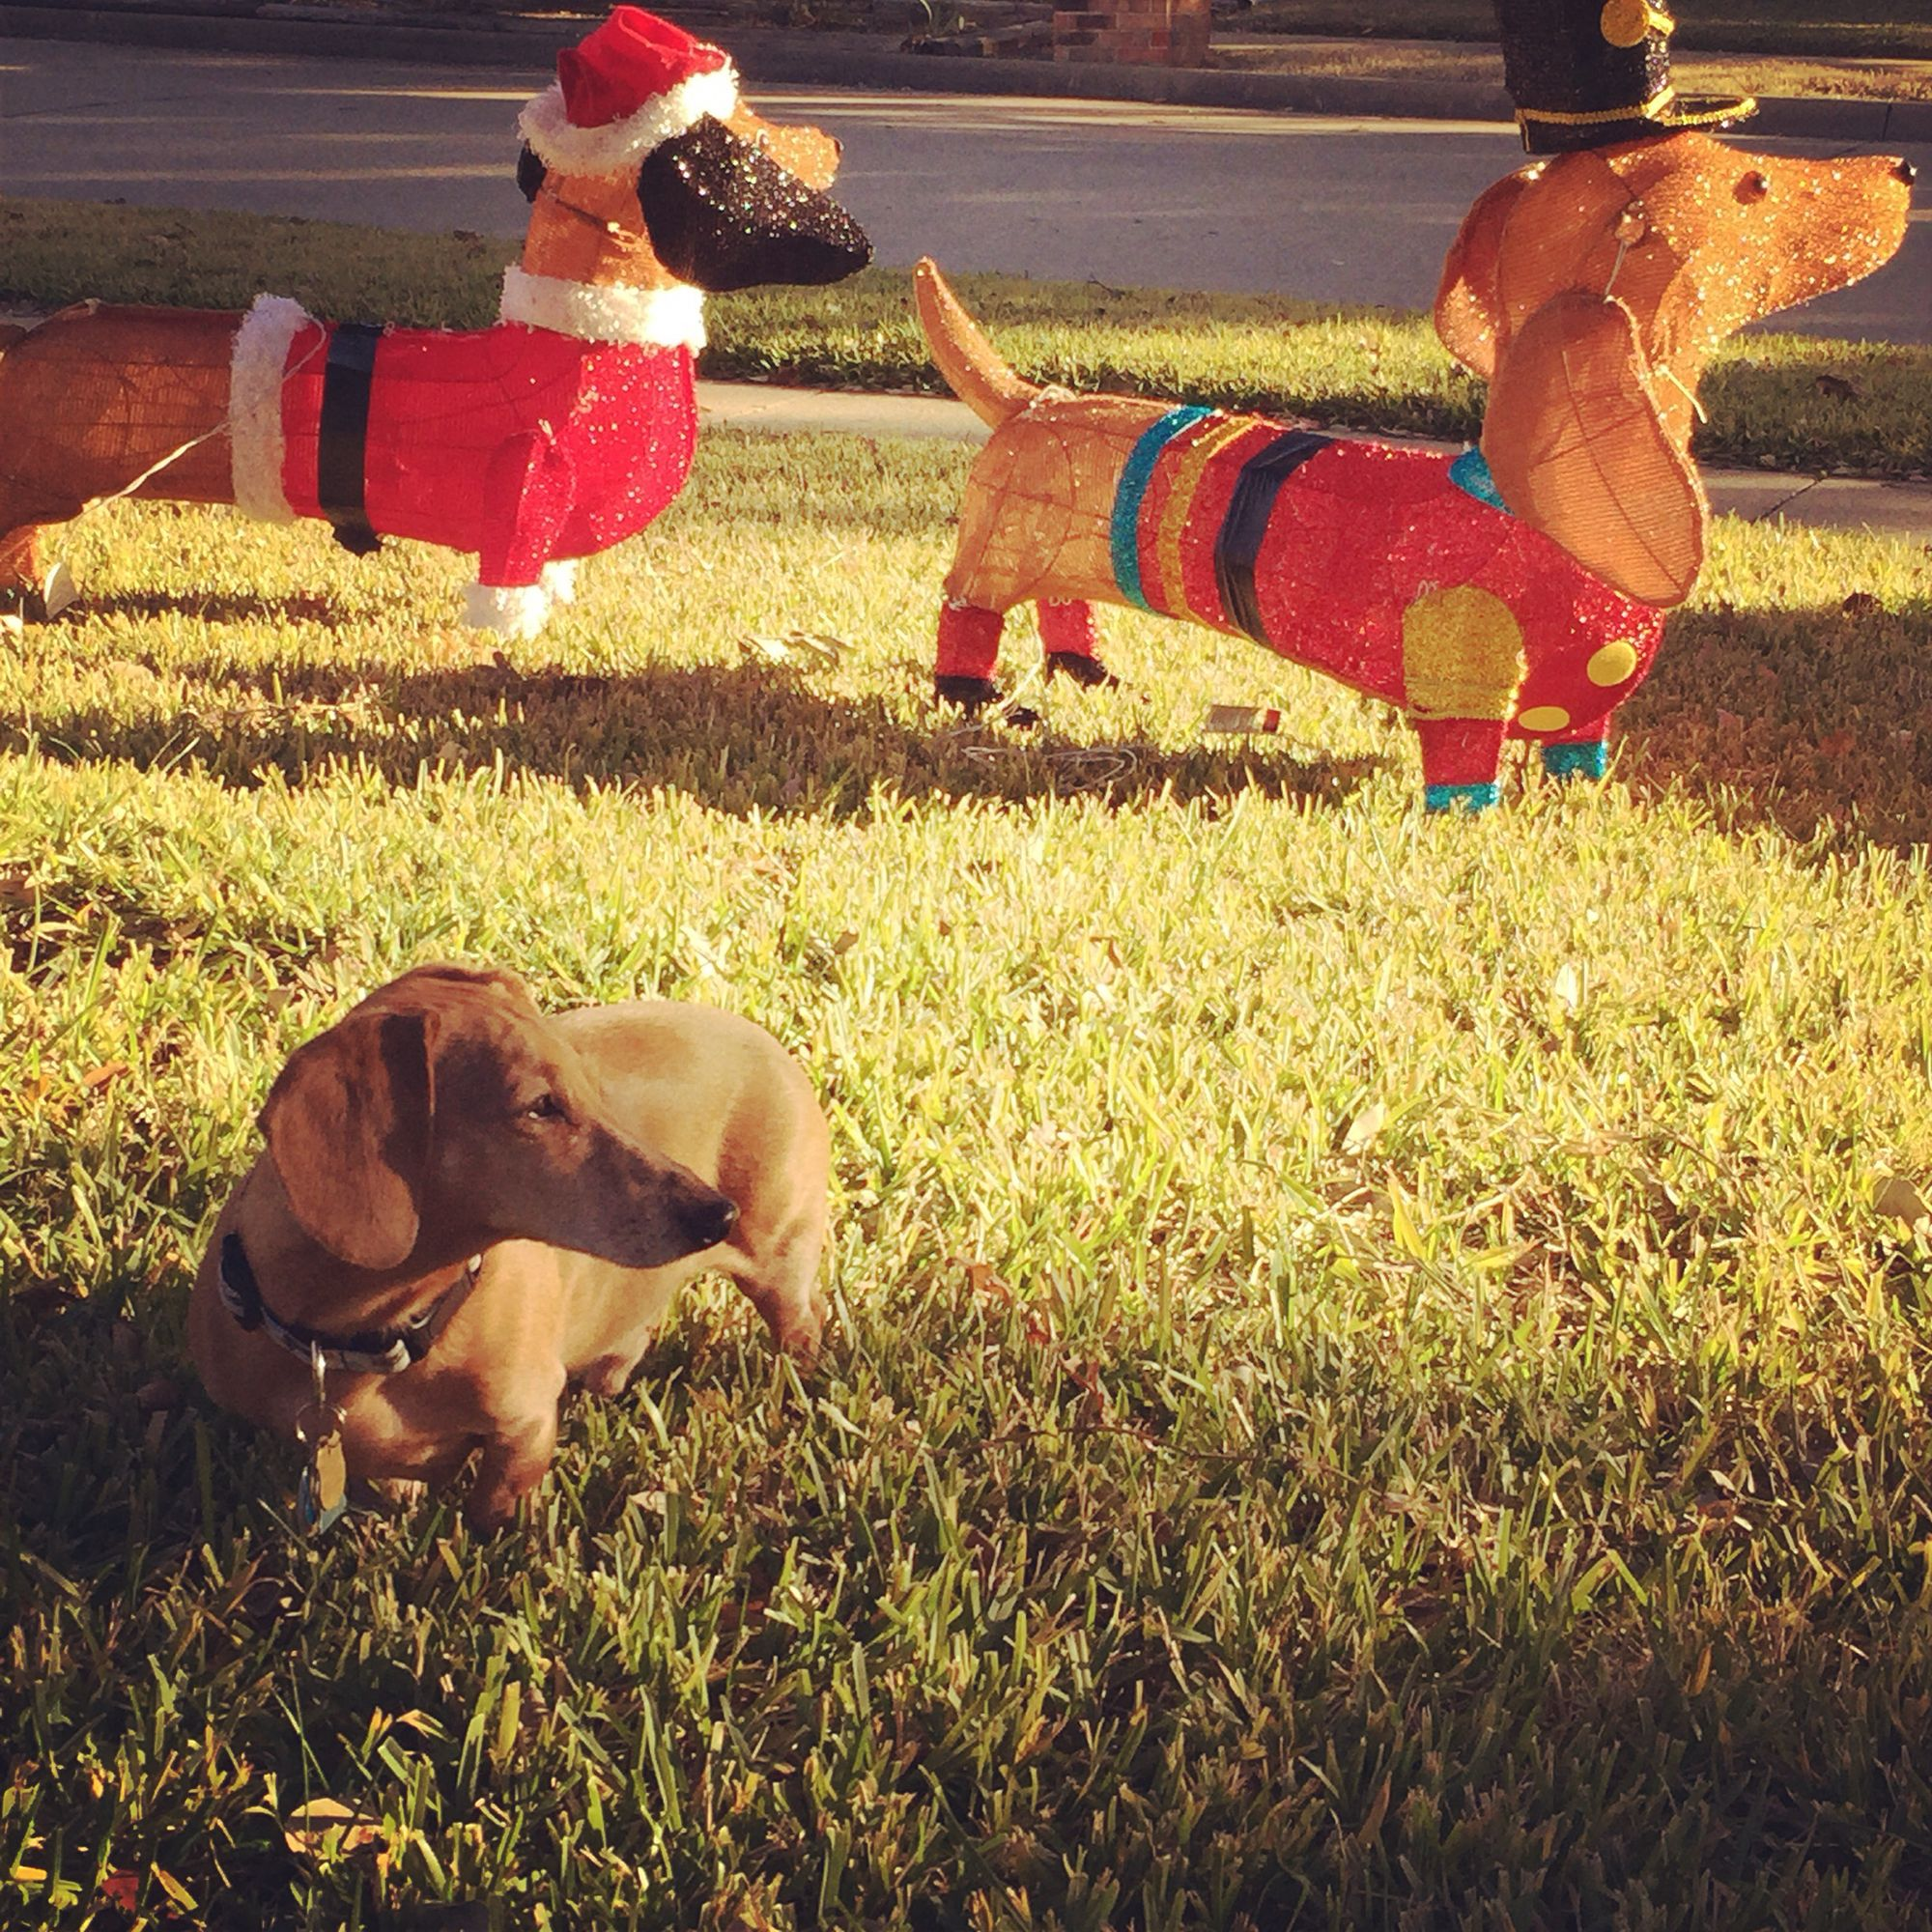 Light up dachshunds from Home Depot and our dog Henry the